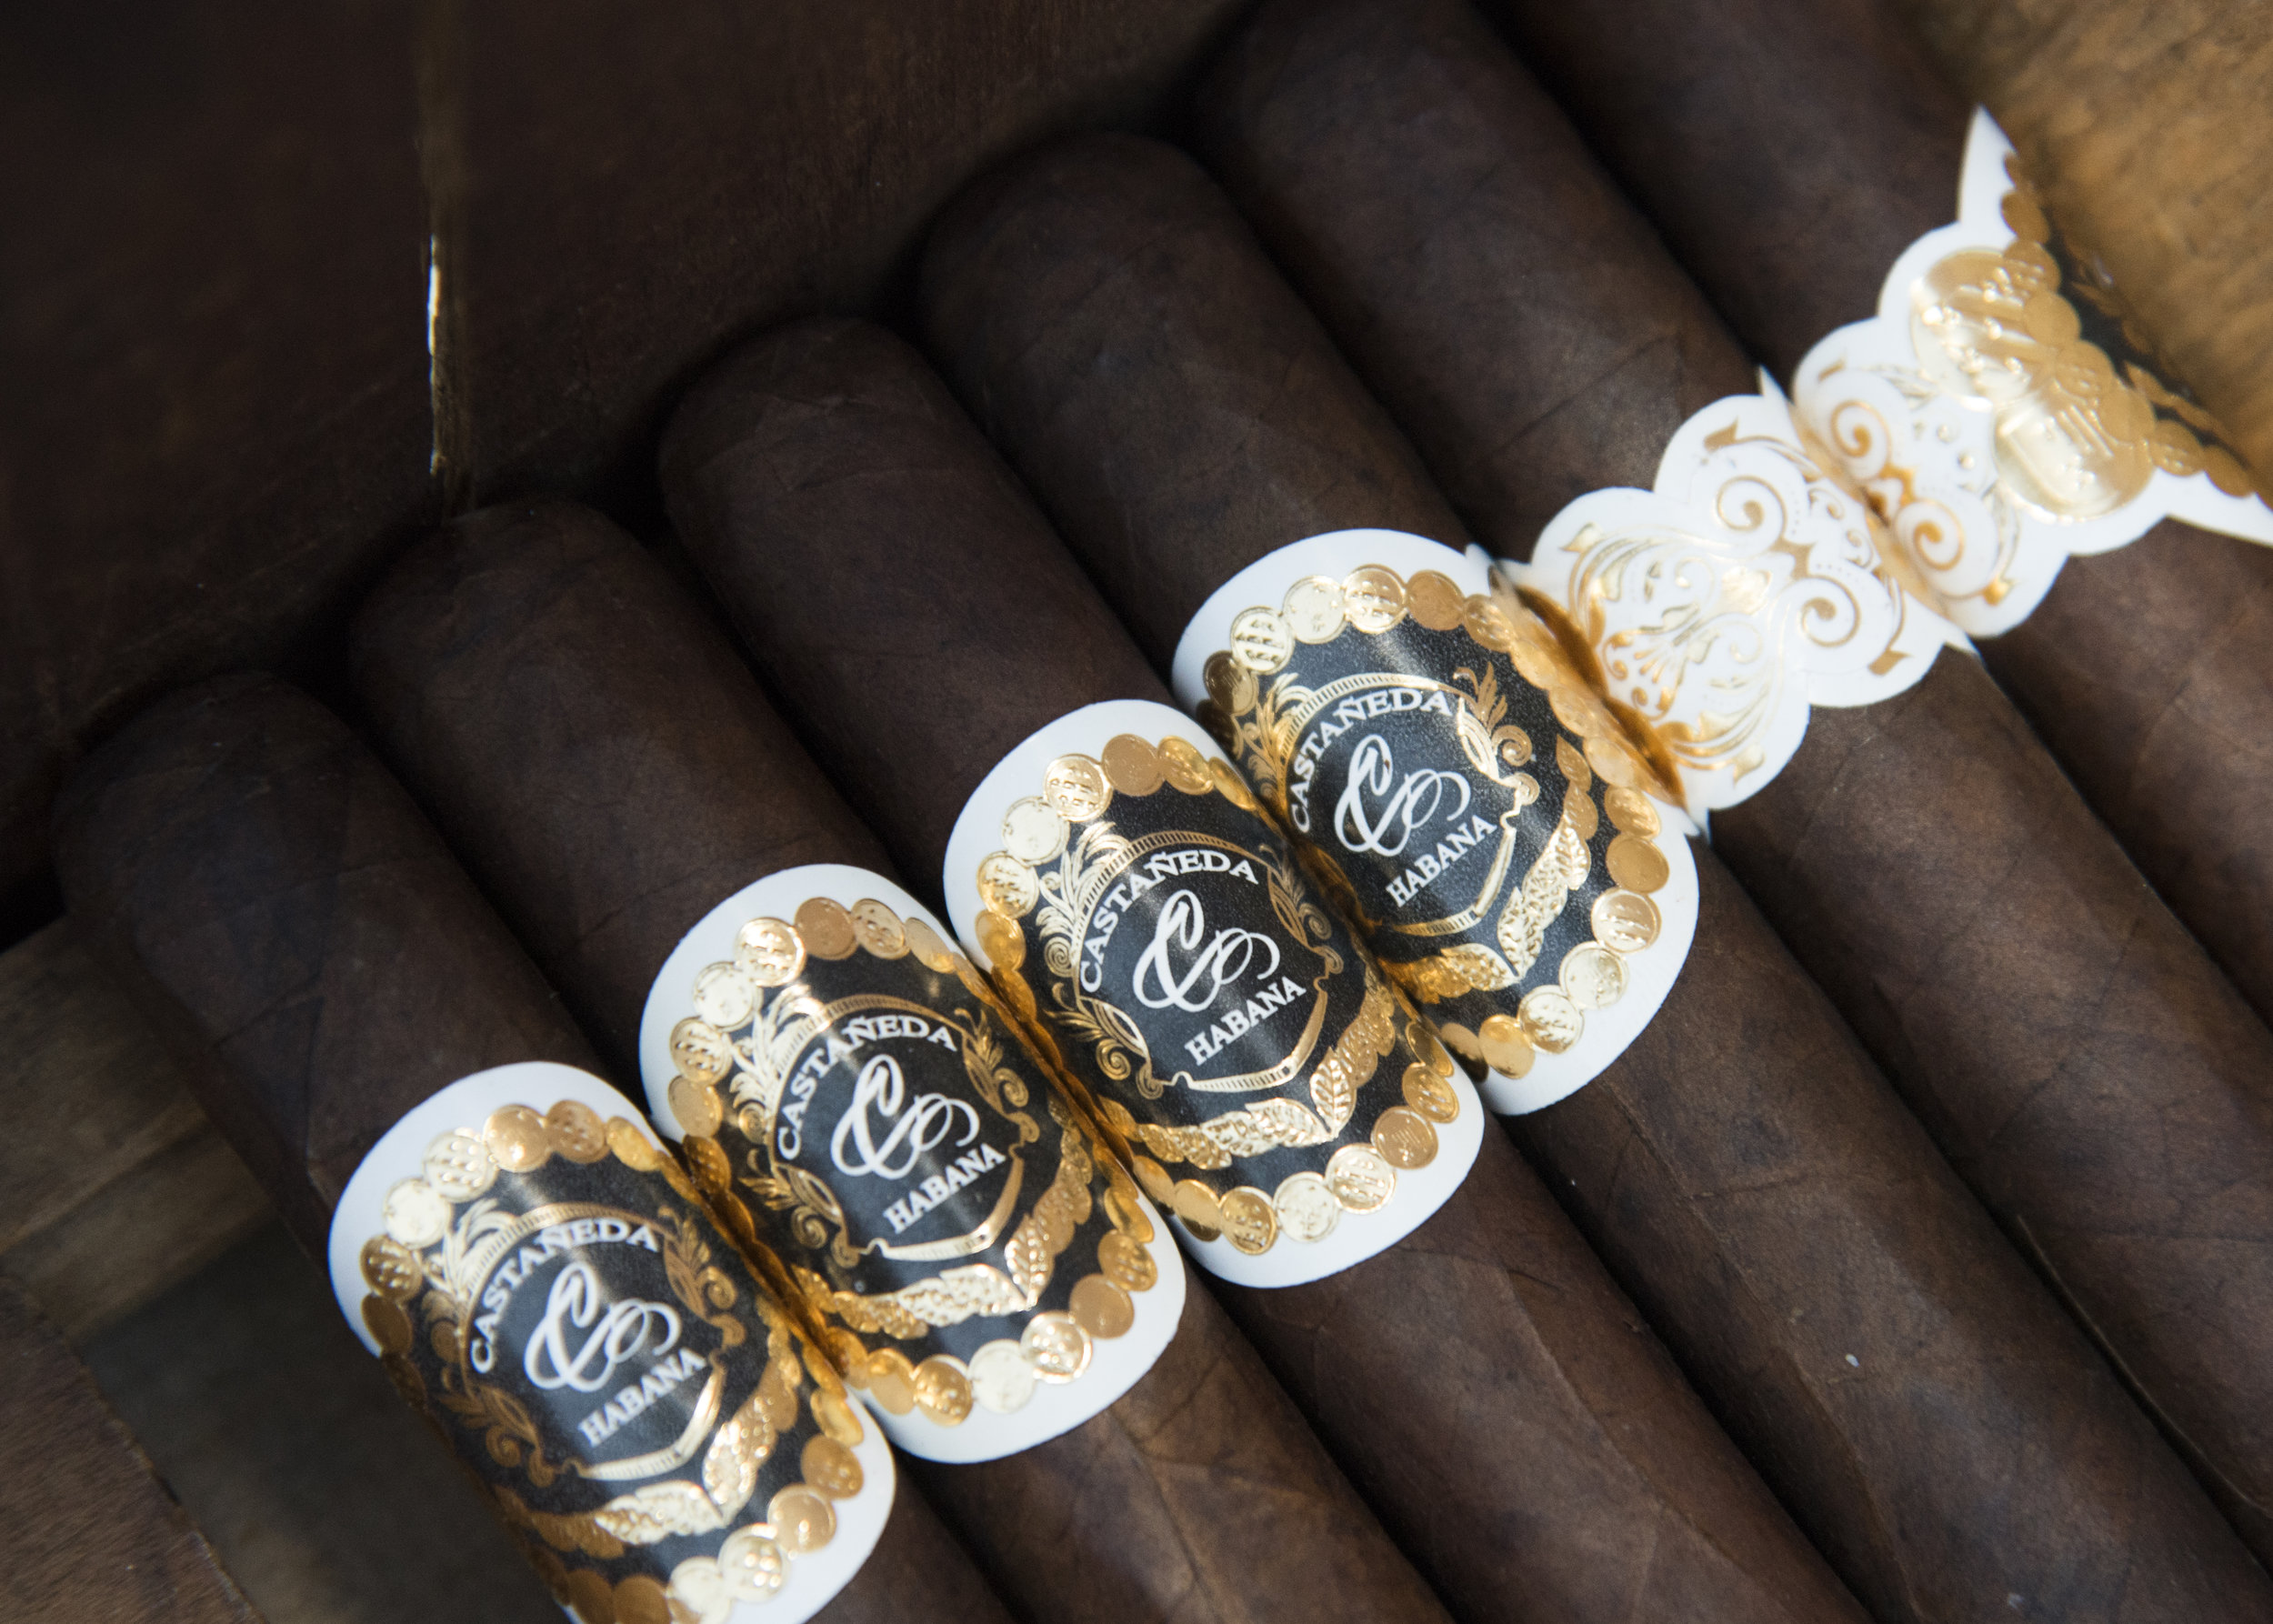 Cigars - With traditional cigar rolling techniques passed down through generations in Cuba and the most delicately selected tobacco leaves planted in Nicaragua, we provide you the best boutique cigars you can find in the US.